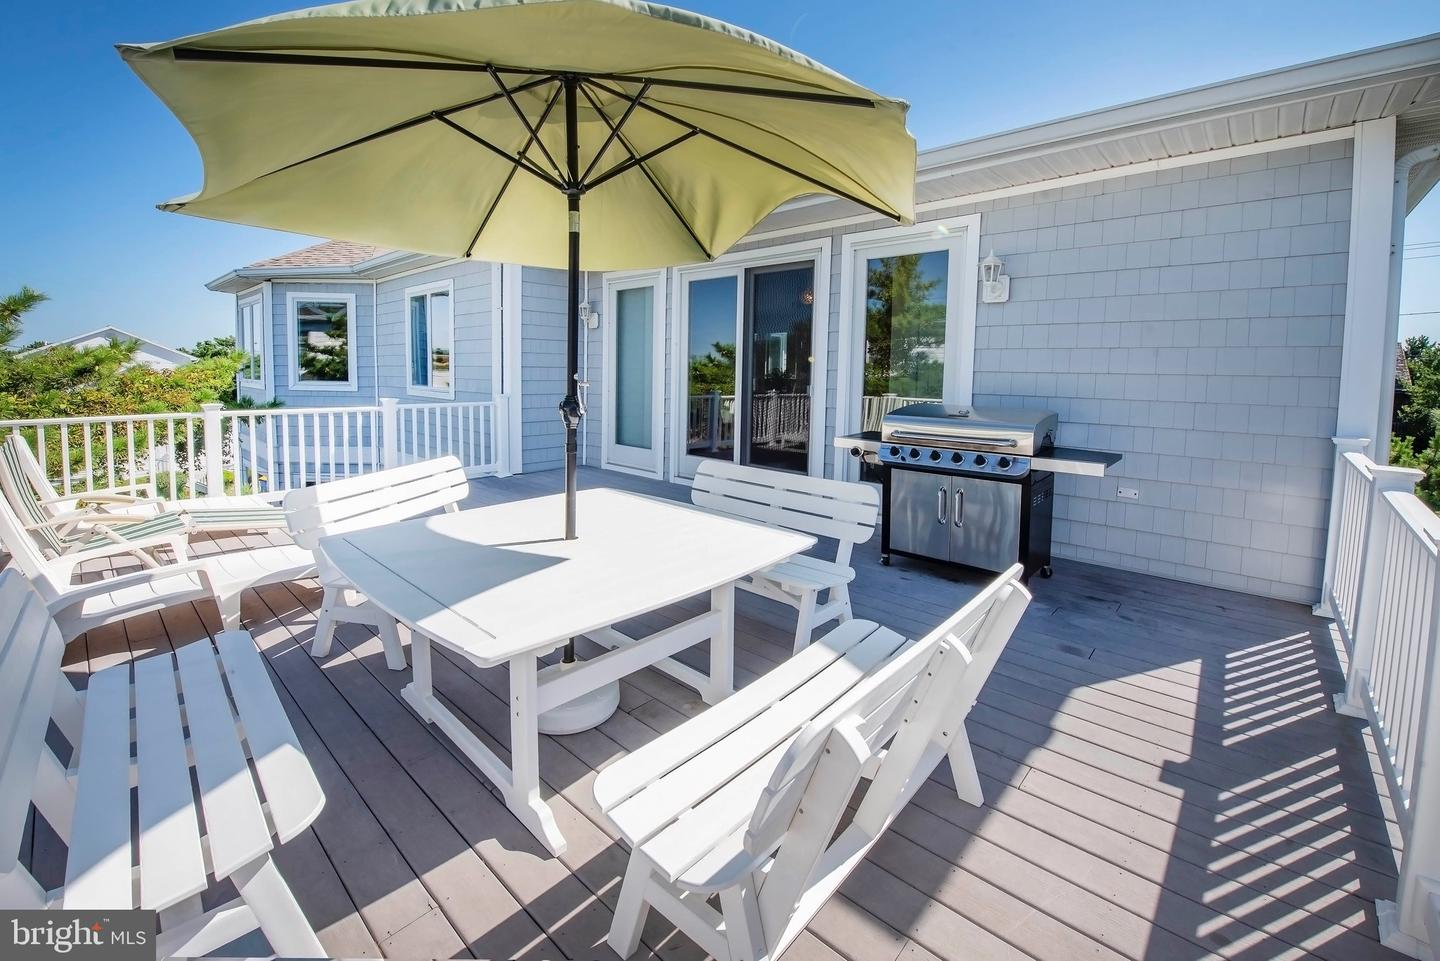 DESU147280-302007866523-2019-08-31-13-42-10 810 Bunting Ave | Fenwick Island, DE Real Estate For Sale | MLS# Desu147280  - Jack Lingo REALTOR